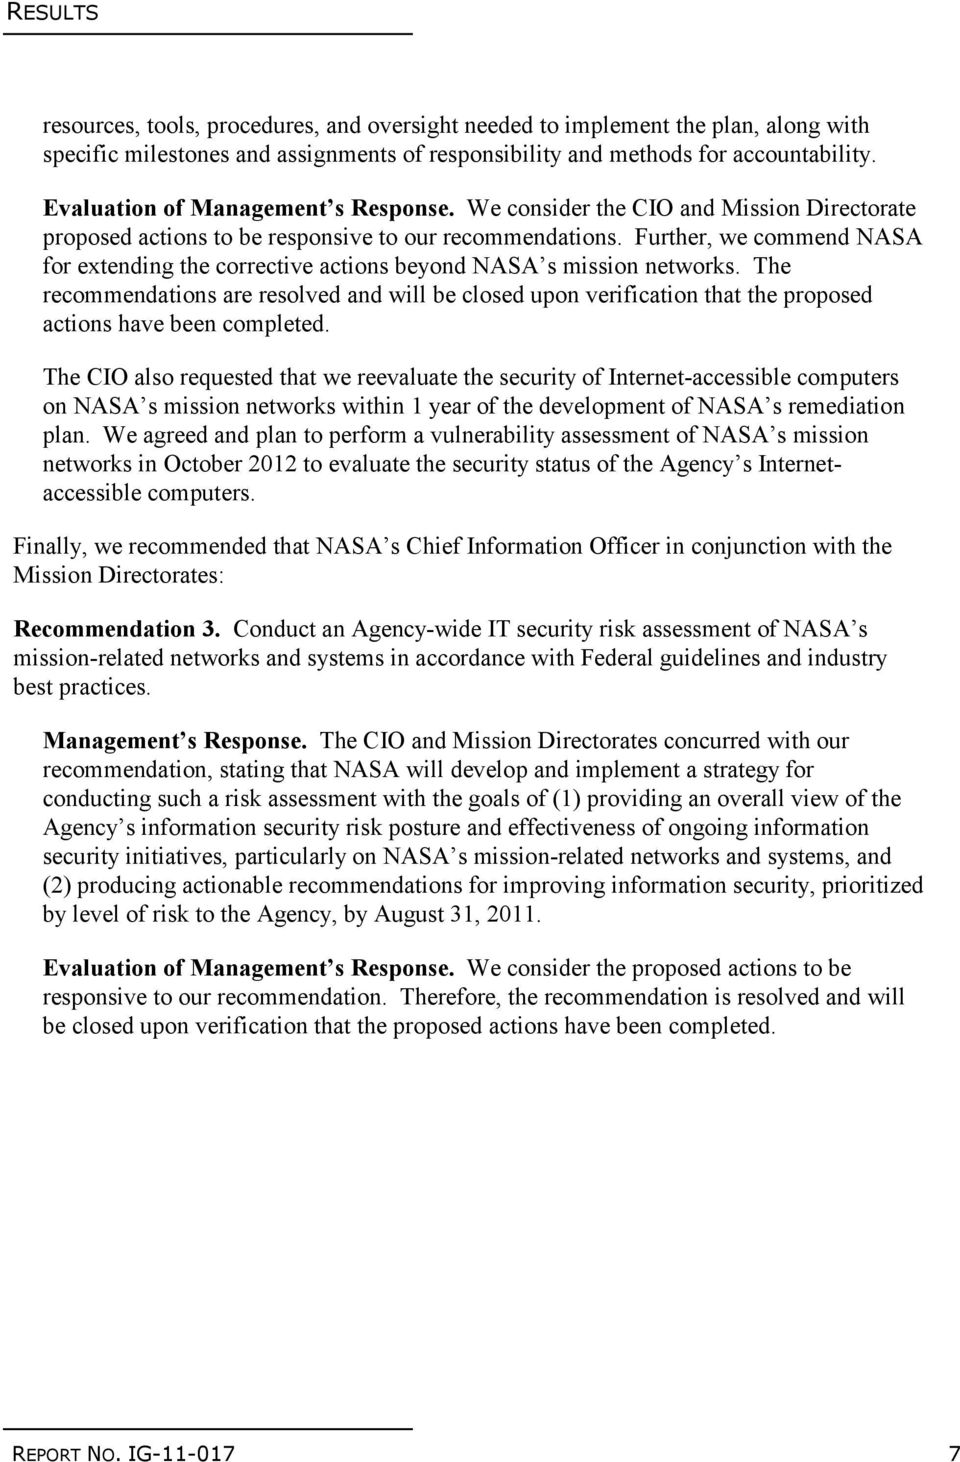 Further, we commend NASA for extending the corrective actions beyond NASA s mission networks.